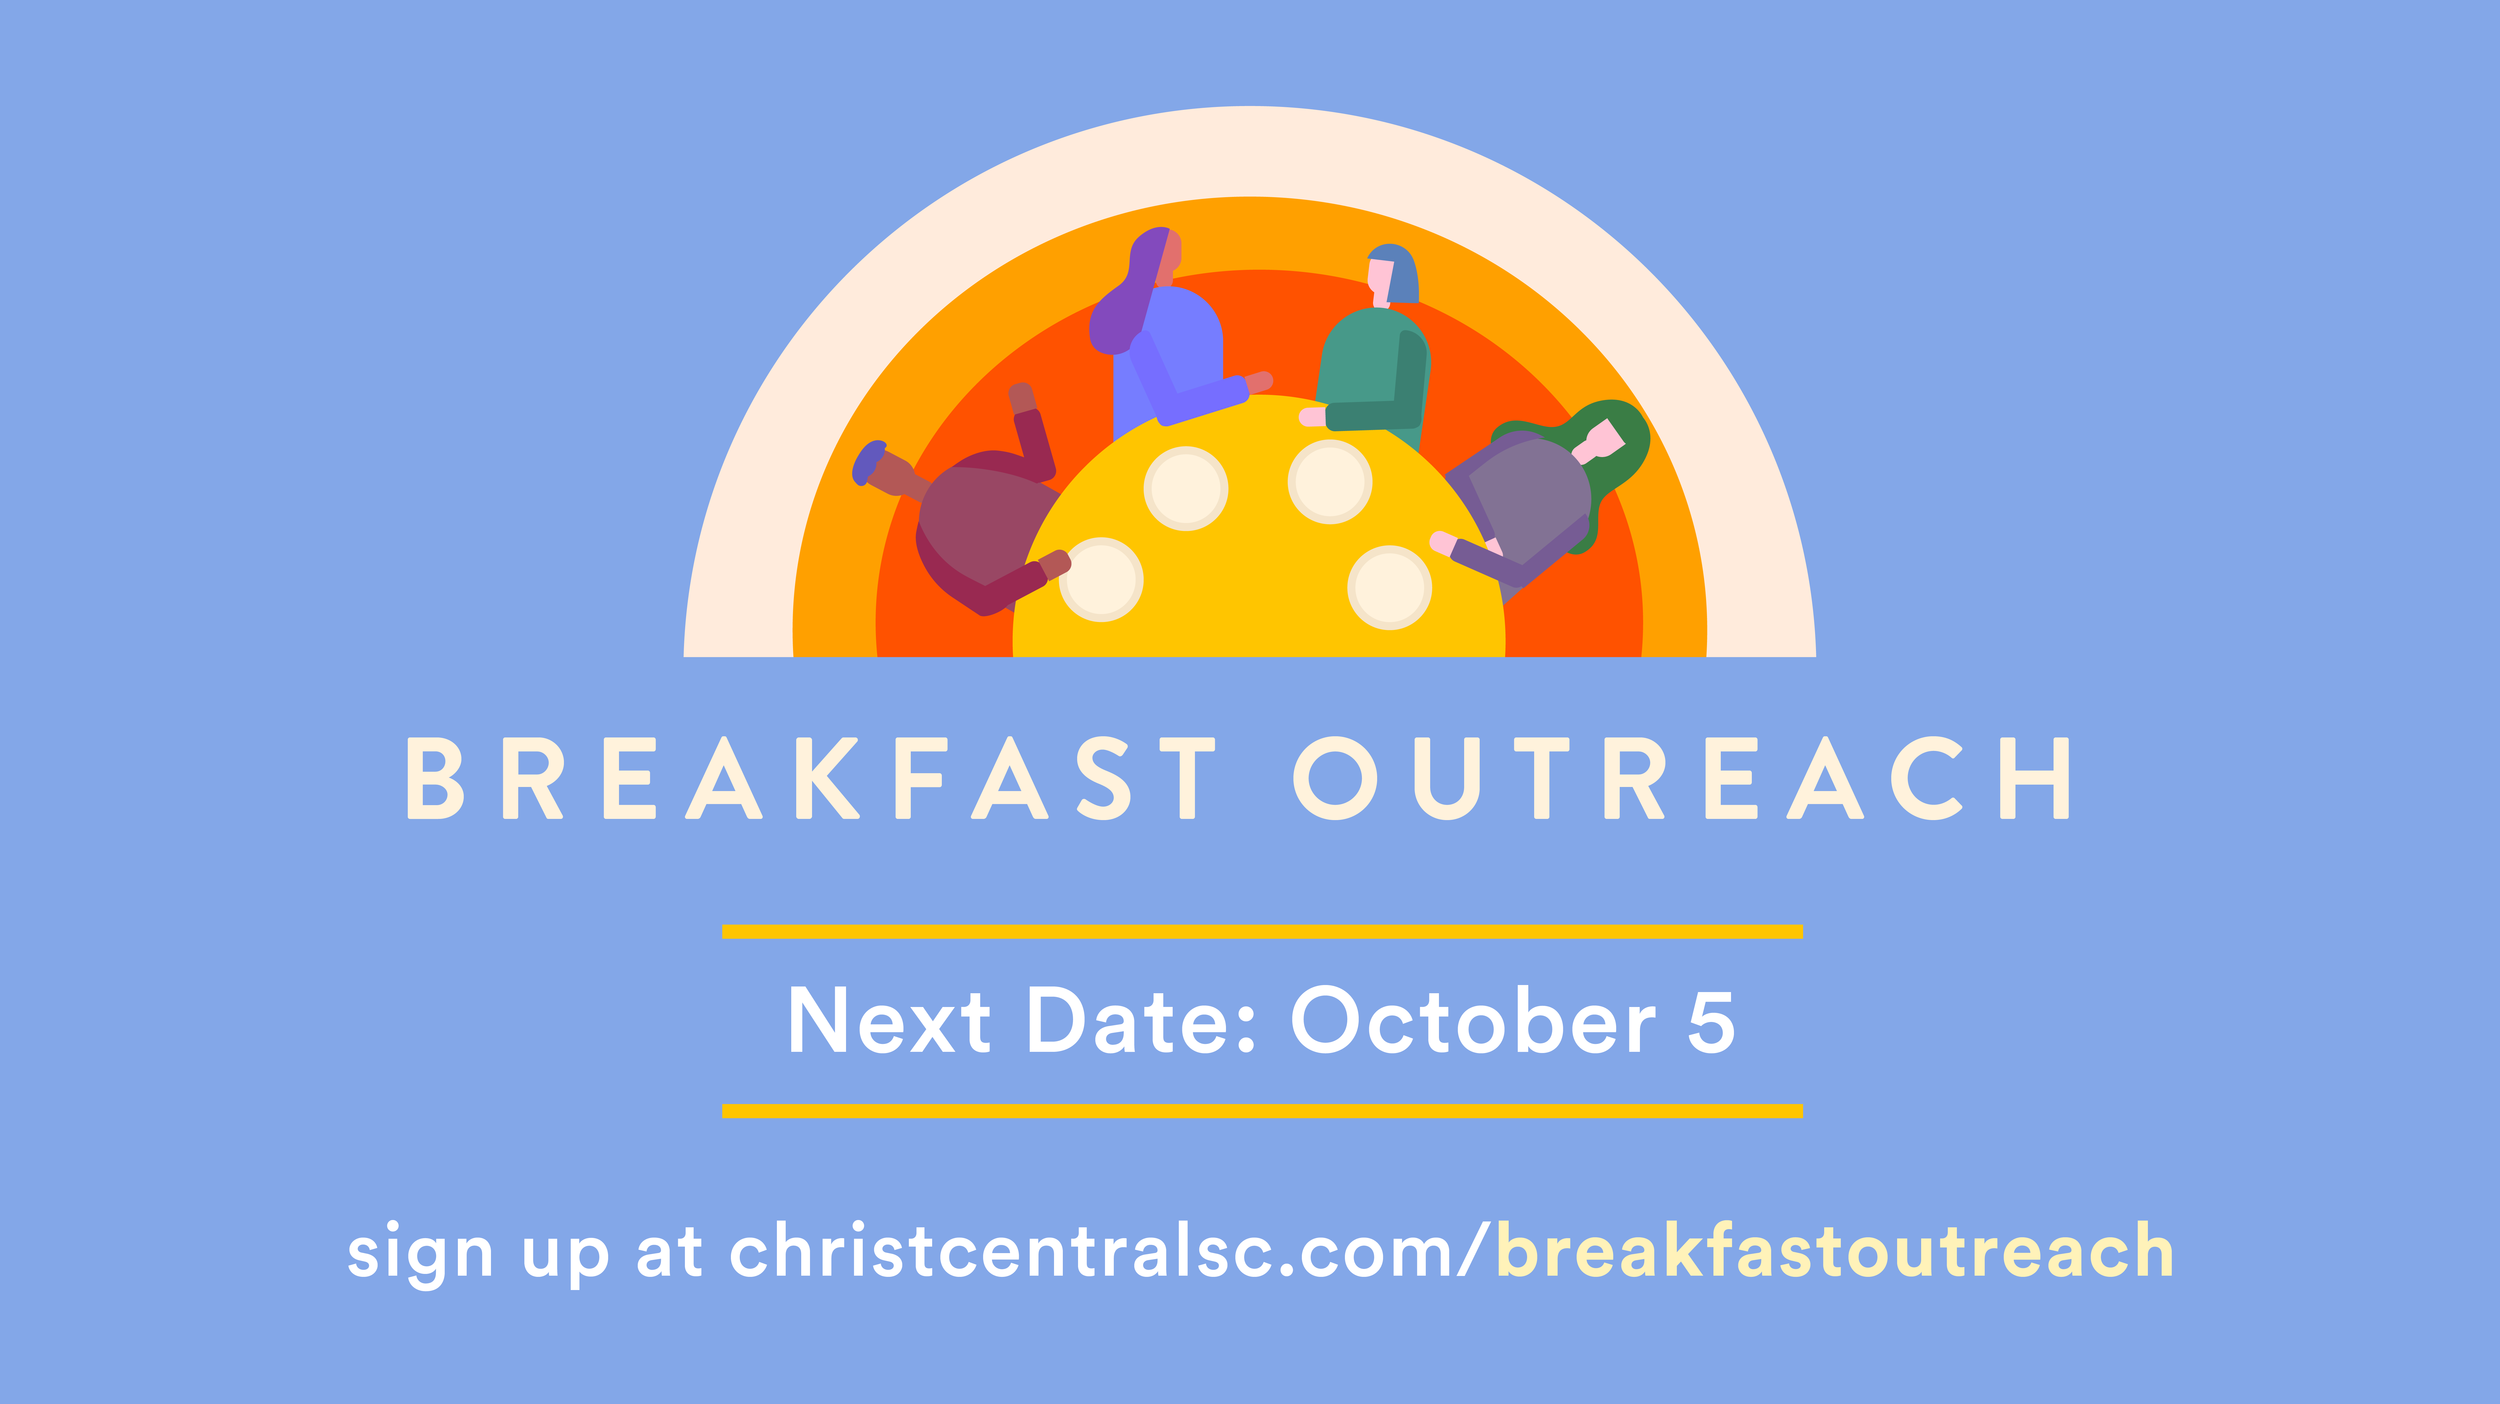 bfast_outreach-oct5.png